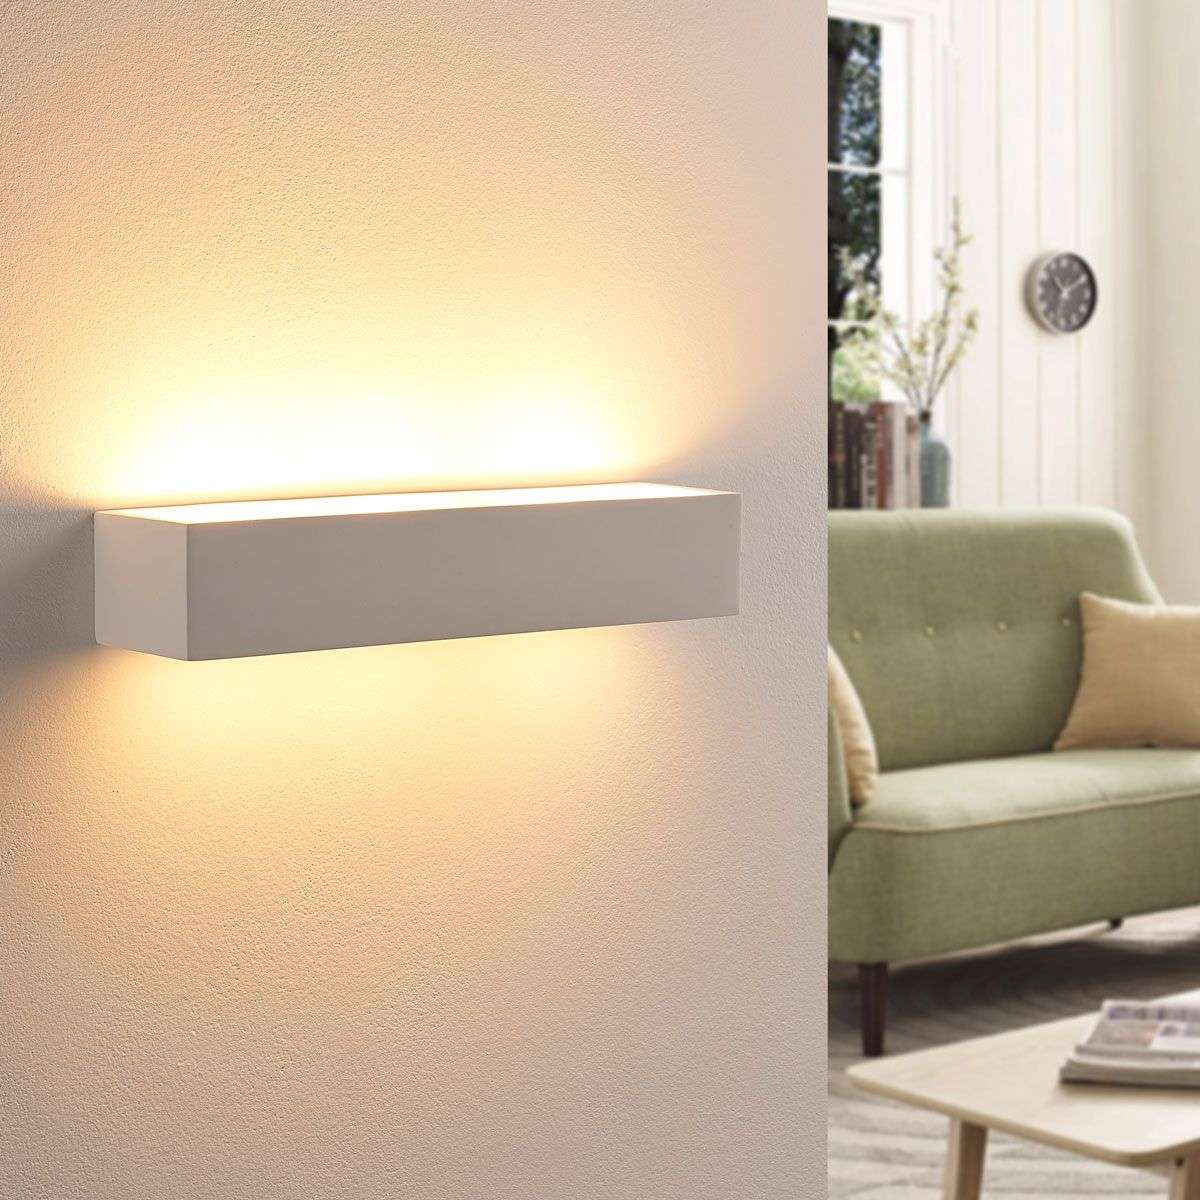 Arya led wall light made of white plaster Ambienti interni moderni